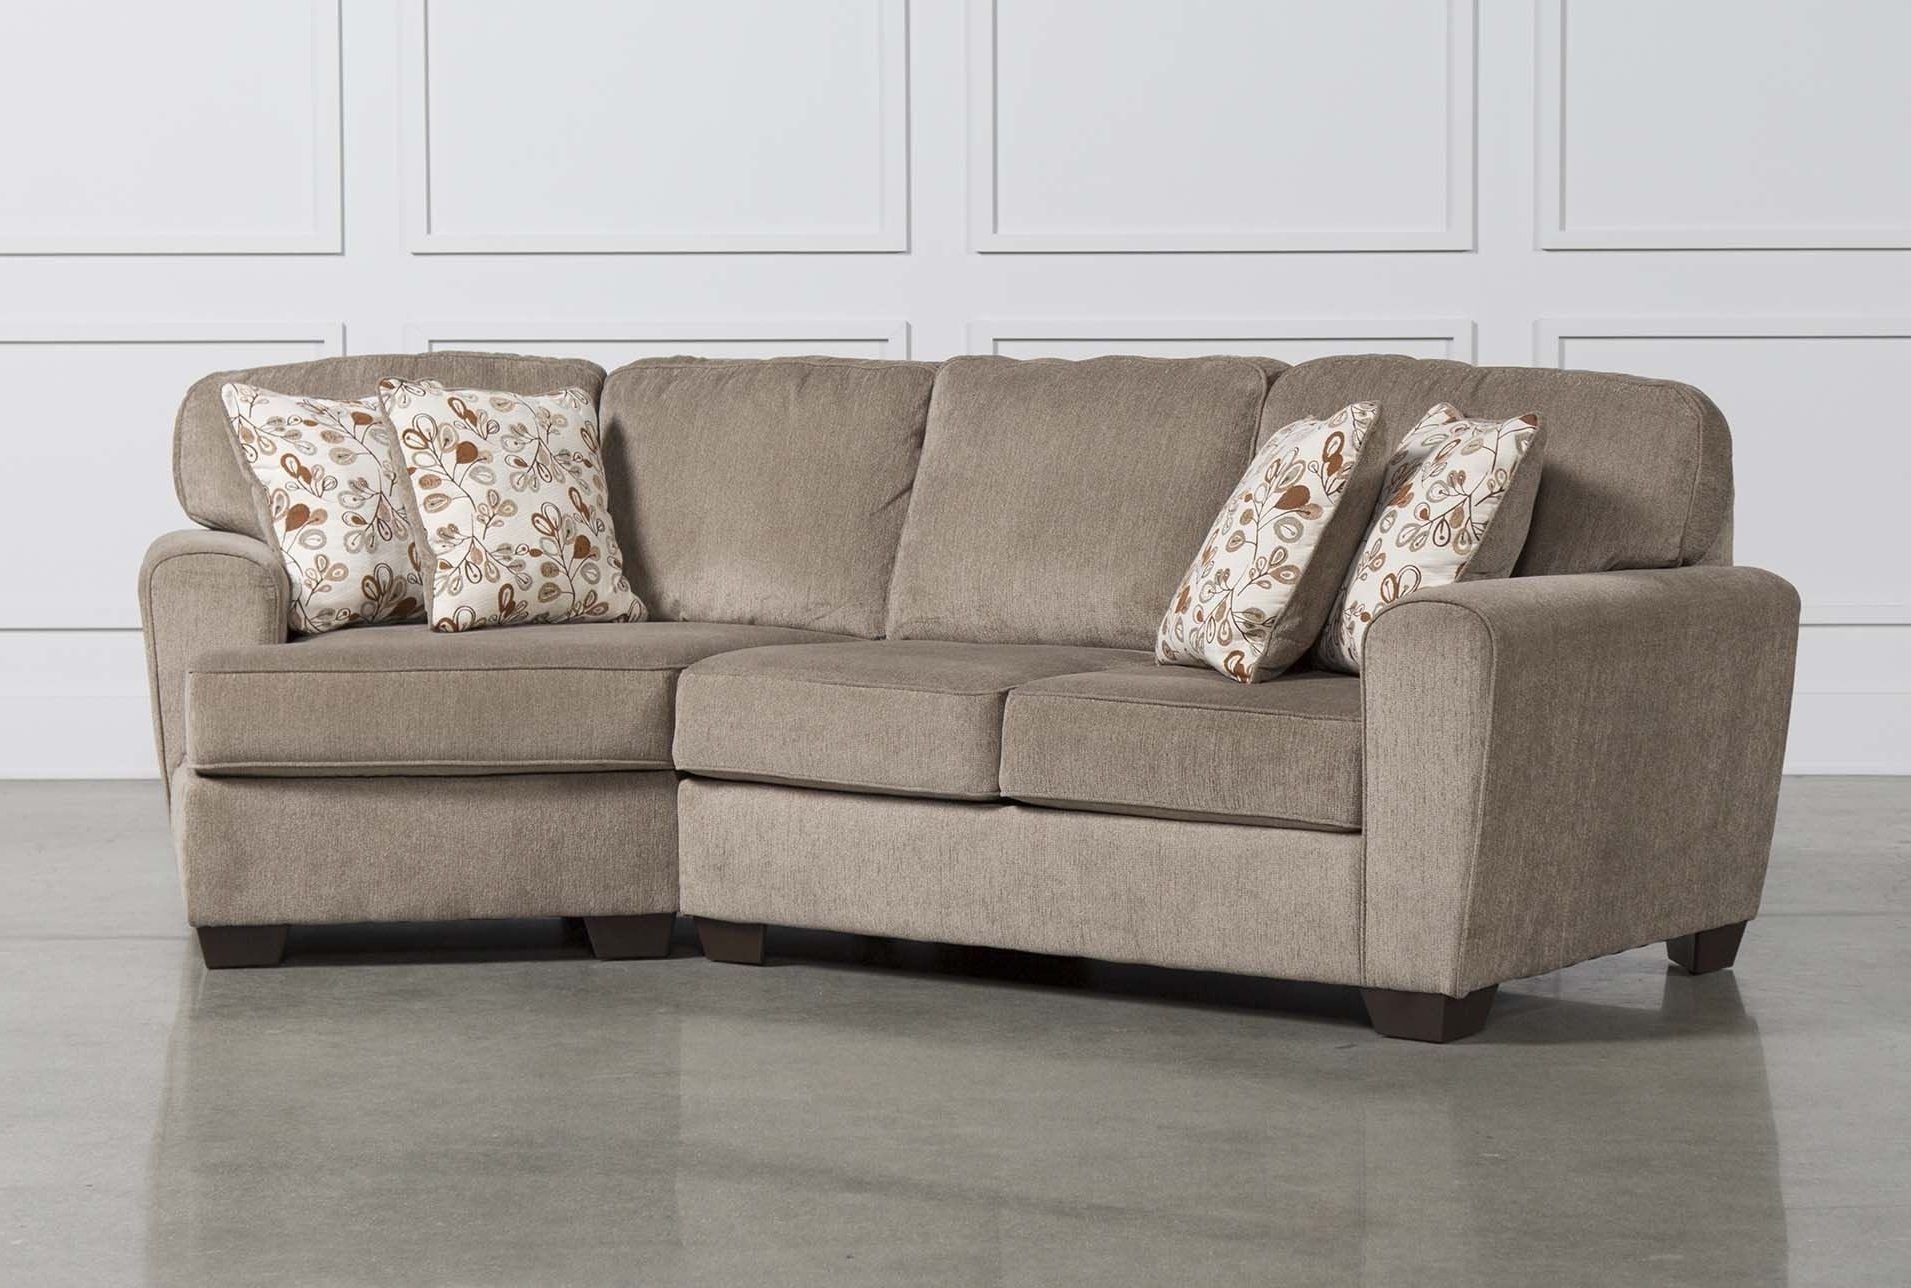 Well Known Cuddler Sectional Sofas Intended For Beautiful Sectional Sofa With A Cuddler – Mediasupload (View 11 of 15)